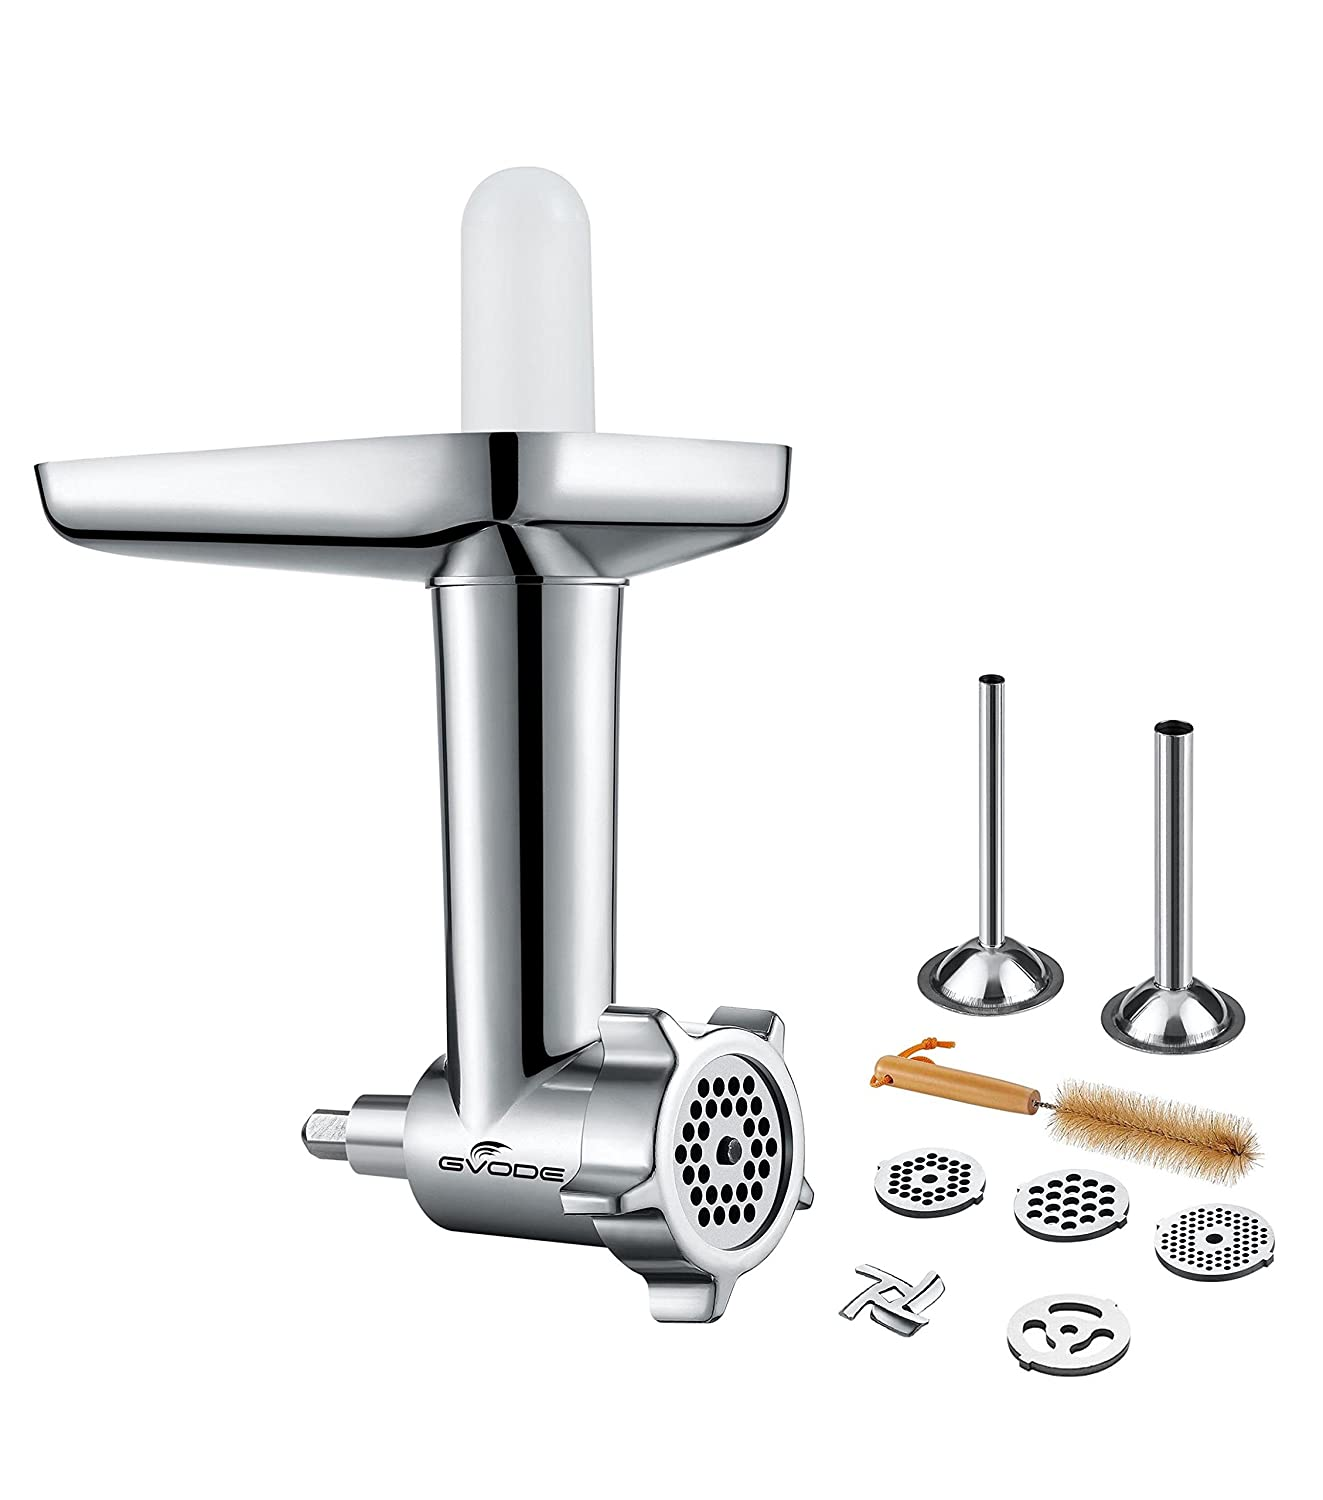 Gvode Kitchen Food Grinder Attachment for KitchenAid Stand Mixers Including Sausage Stuffer and 4 Grinding Plates-Kitchenaid Mixer Accessories Gvode Inc G1705